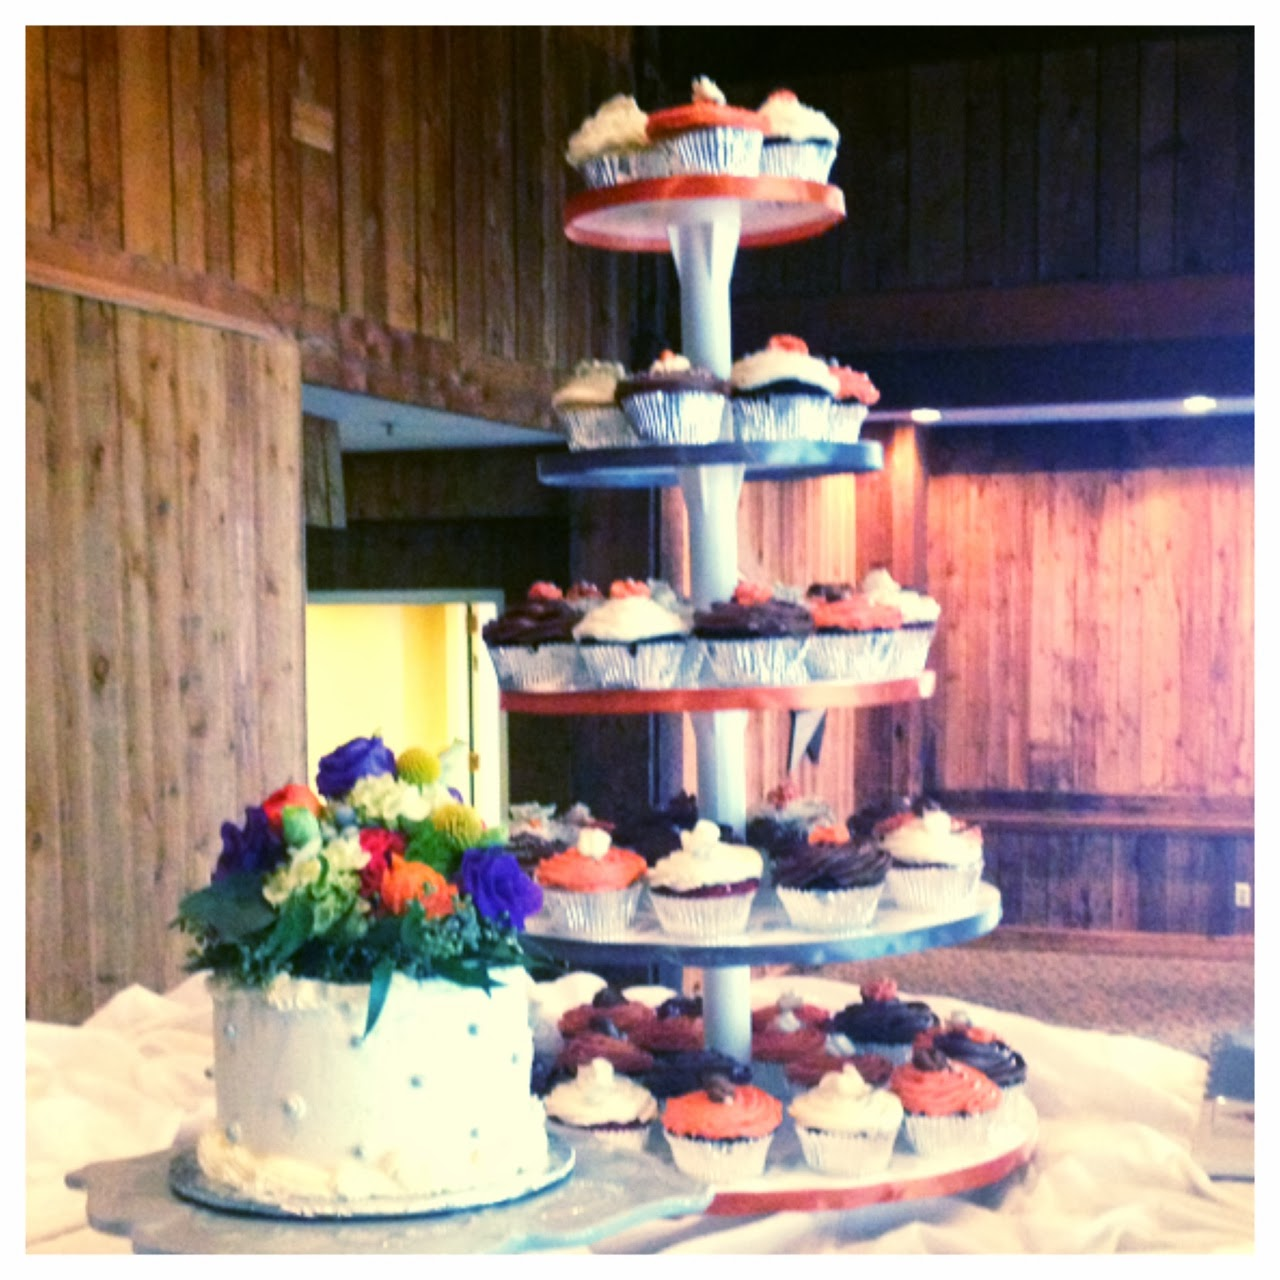 Wedding Cake 101 An Introduction To Wedding Cakes: Wedding Planning 101: Yum! Wedding Cakes For All Couples